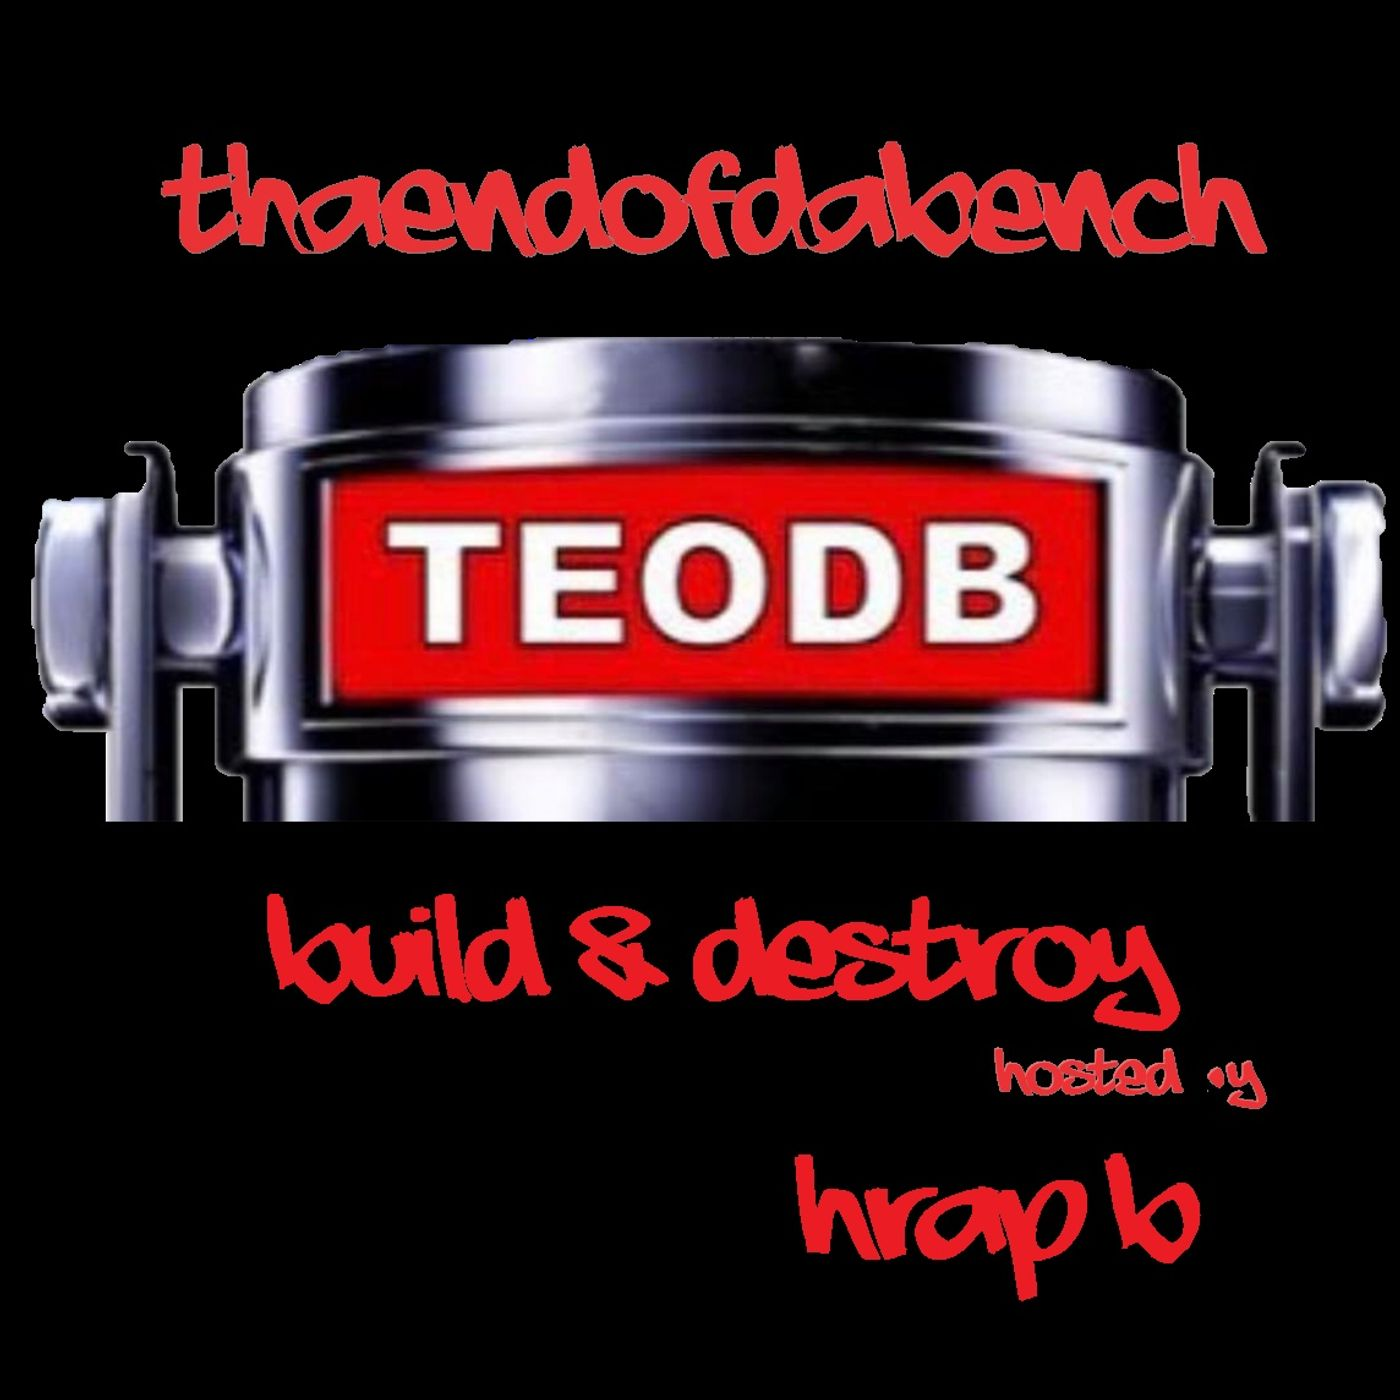 TEODB Podcast Hosted by HRap B